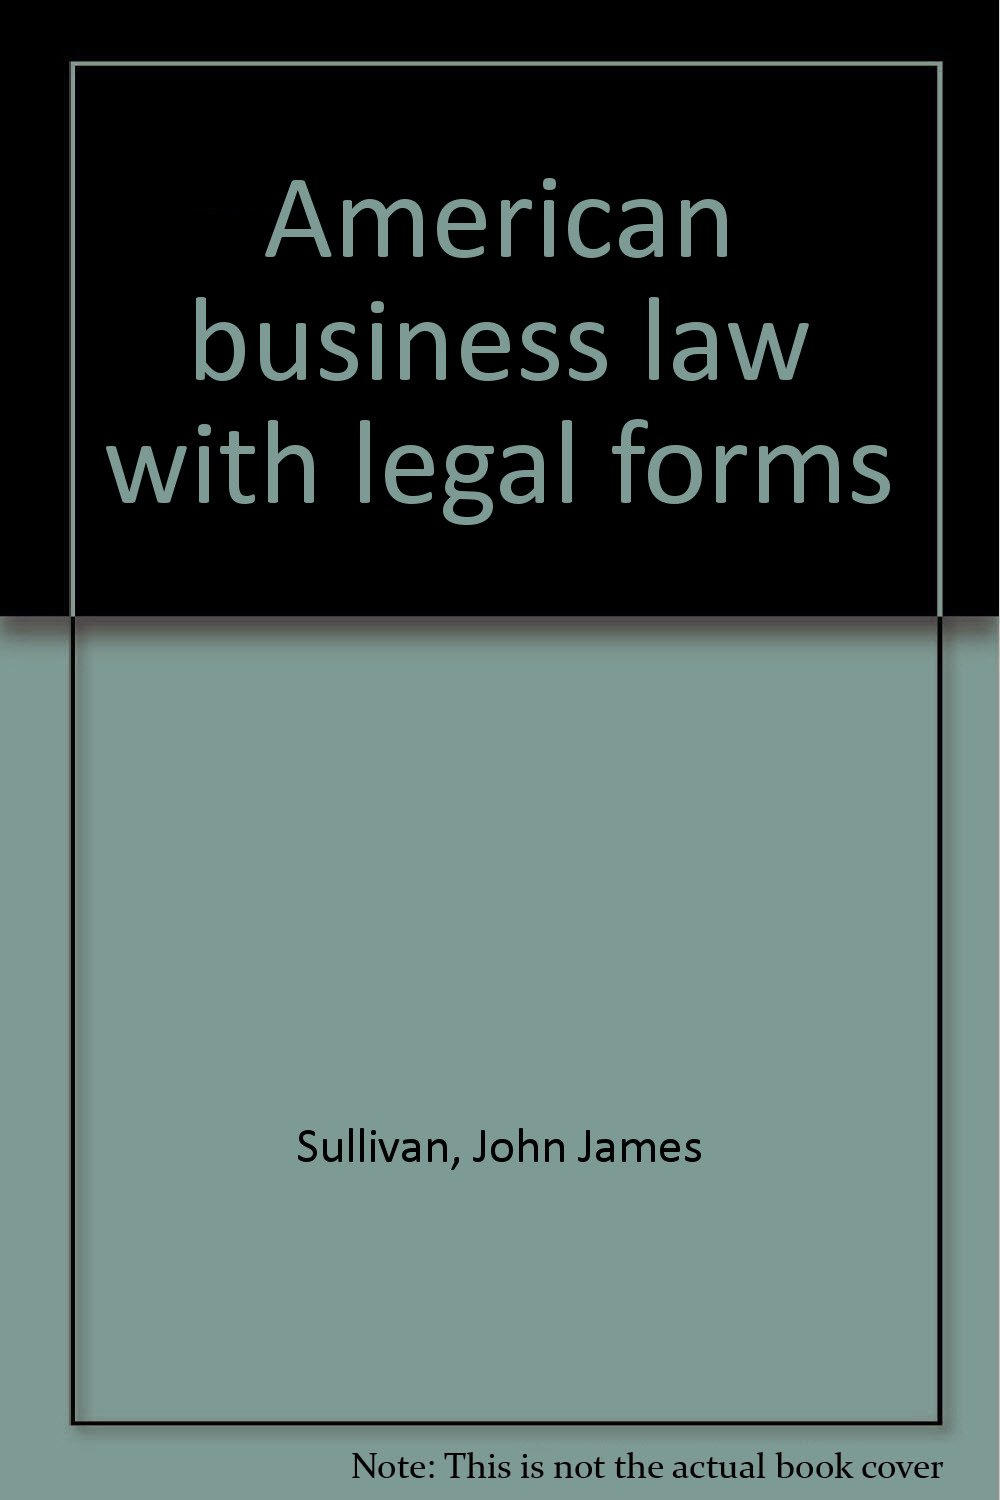 American Business Law With Legal Forms John James Sullivan Amazon - American legal forms